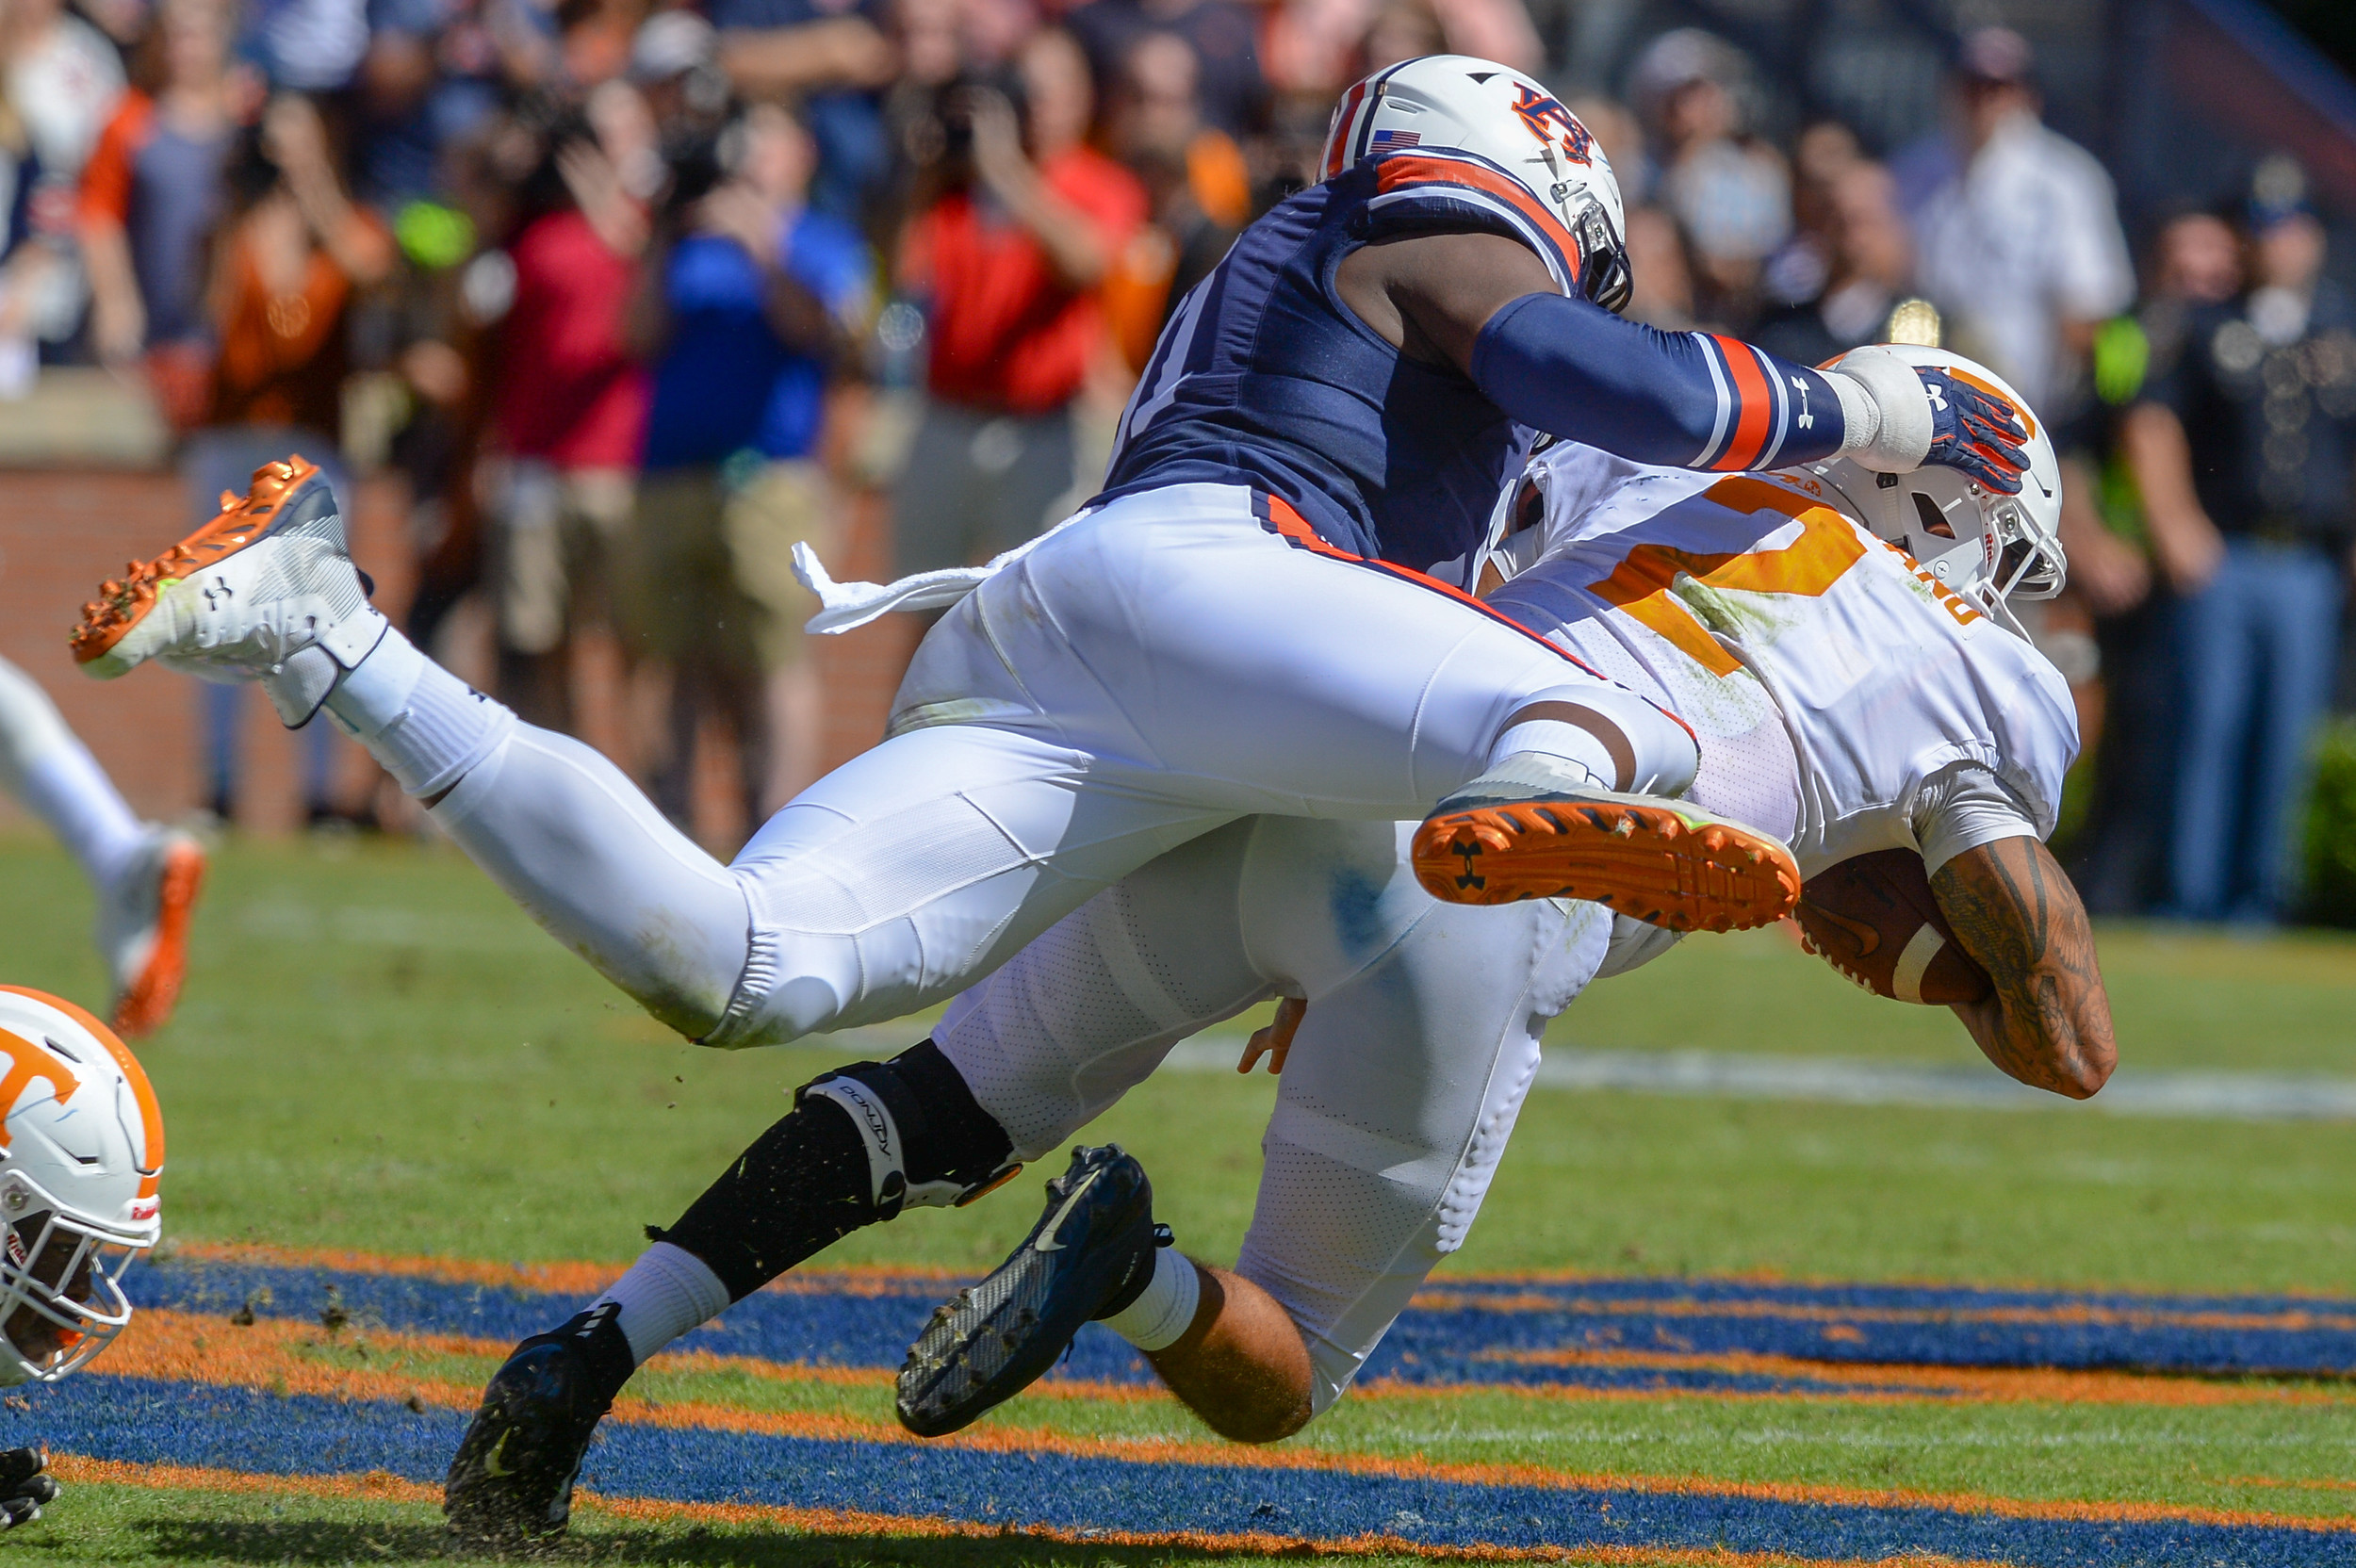 Auburn Tigers defensive lineman Nick Coe (91) sacks Tennessee Volunteers quarterback Jarrett Guarantano (2) during the first half of Saturday's game, at Jordan-Hare Stadium in Auburn, AL. Daily Mountain Eagle -  Jeff Johnsey